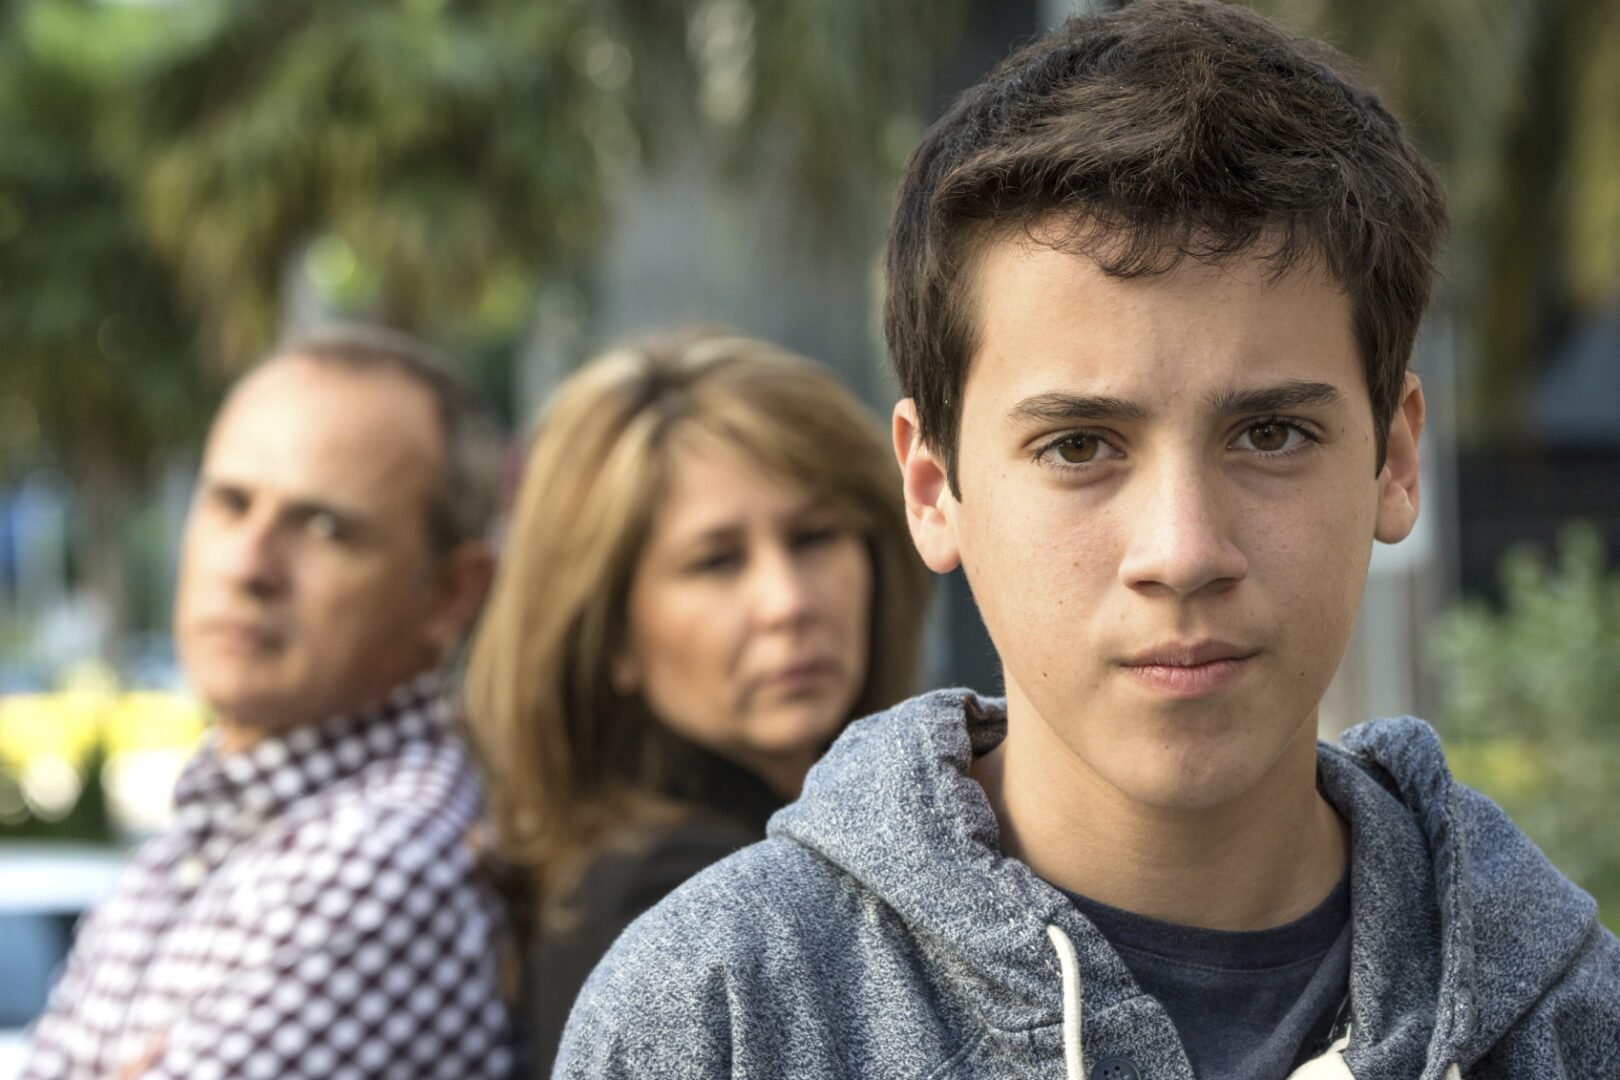 Help for Parents of Troubled Youth from At Risk Youth Programs